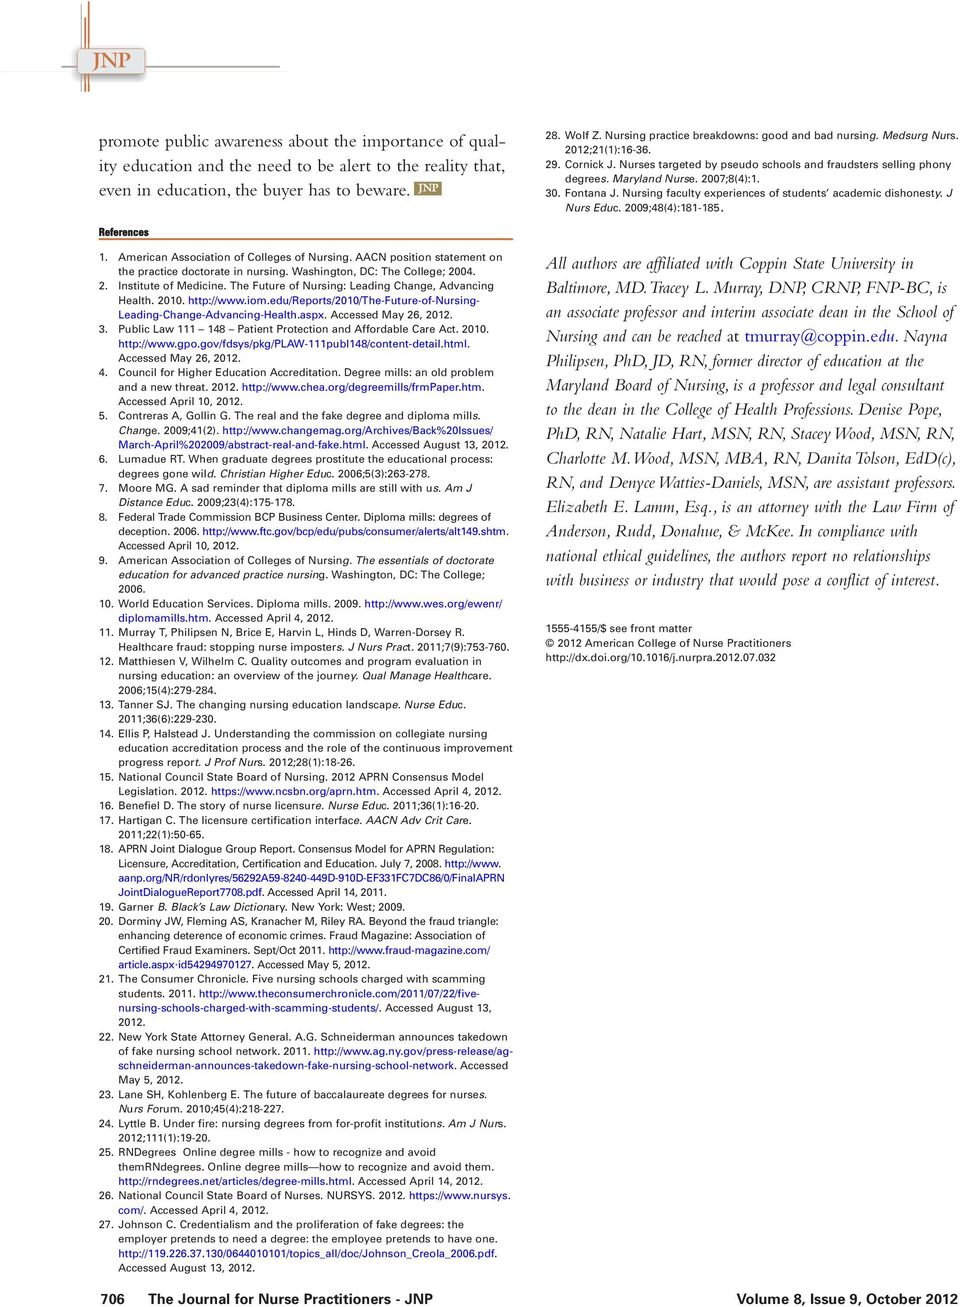 30. Fontana J. Nursing faculty experiences of students academic dishonesty. J Nurs Educ. 2009;48(4):181-185. References 1. American Association of Colleges of Nursing.